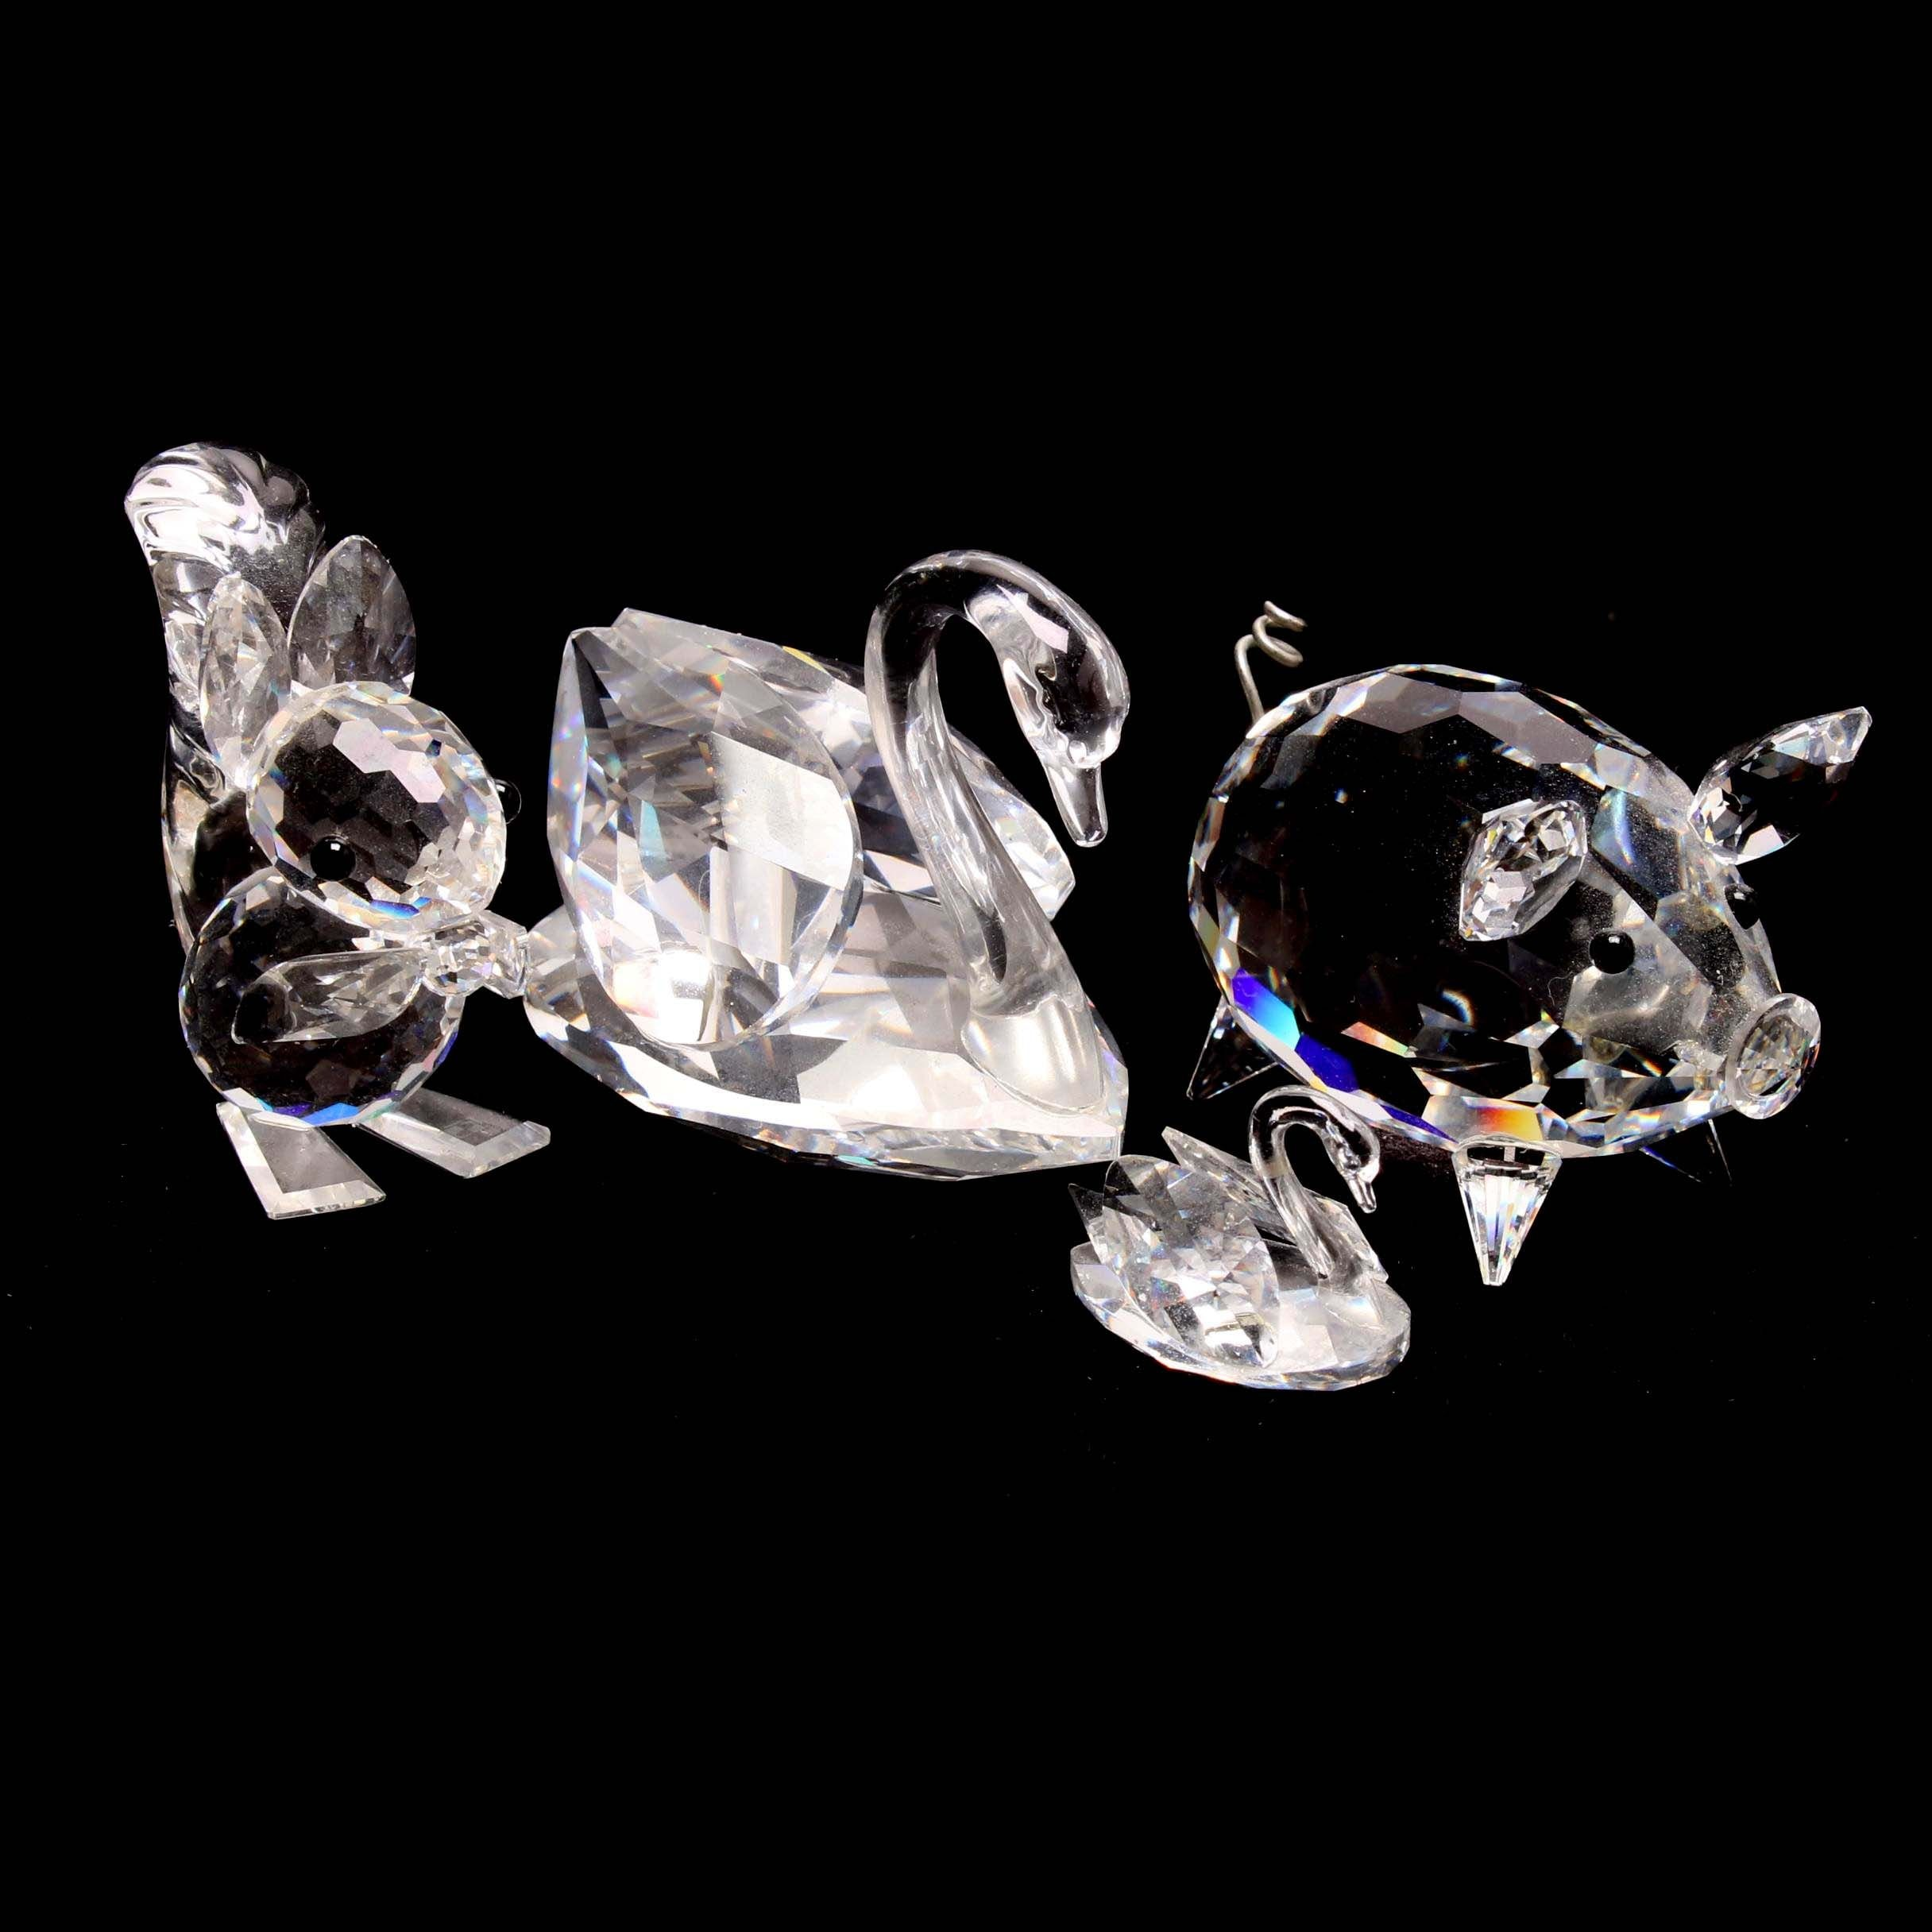 Swarovski Crystal Pig and Squirrel Figurines with Two Swans